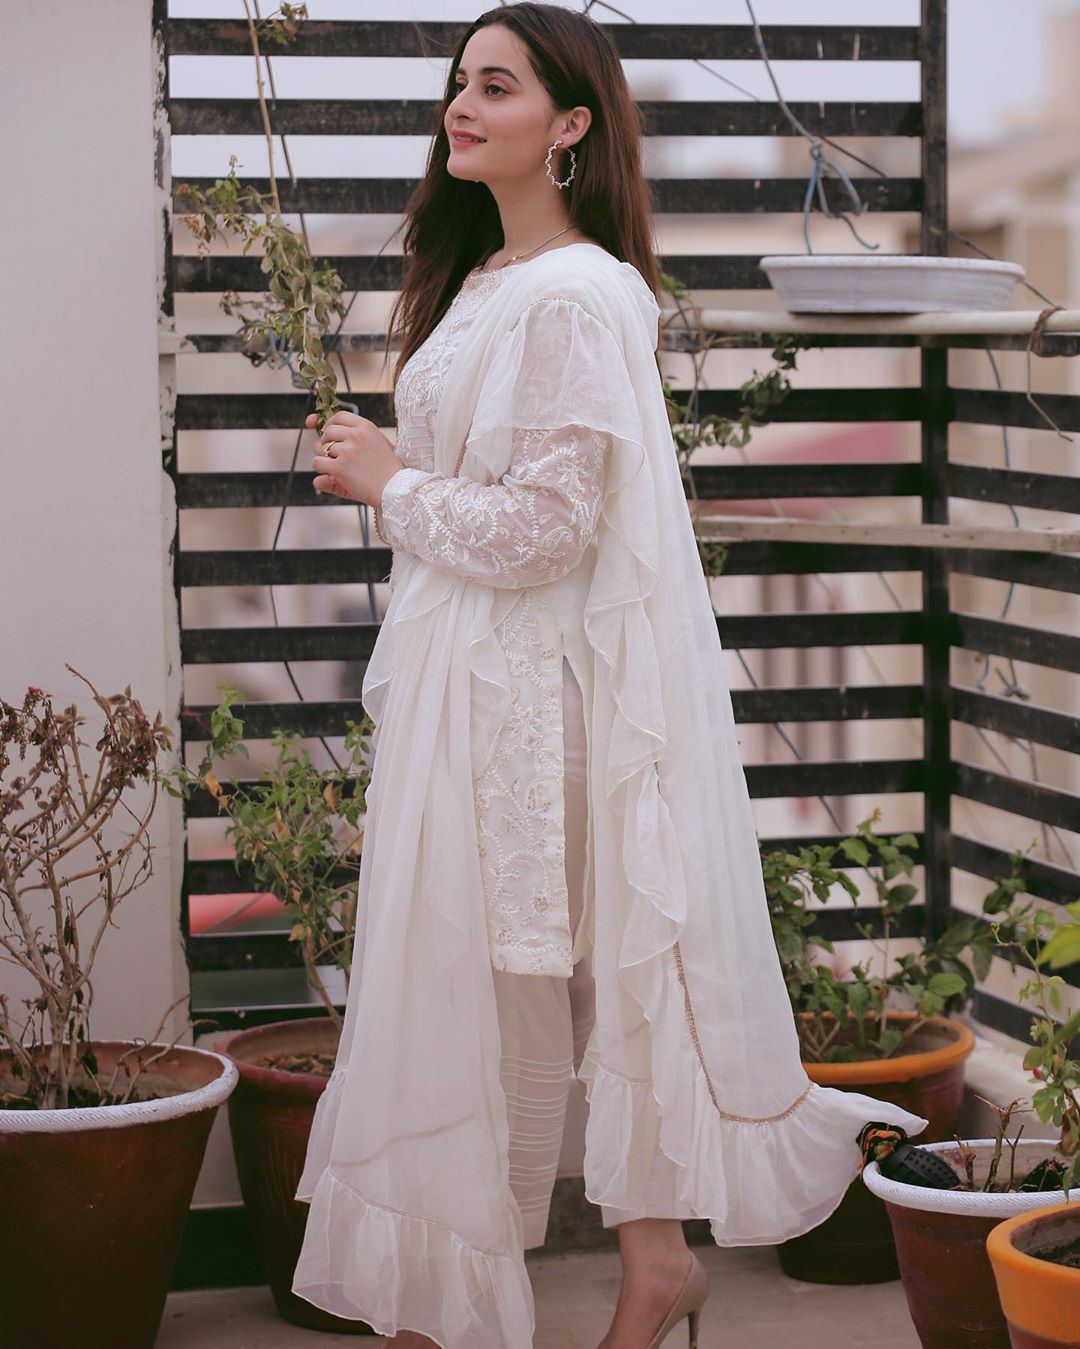 Beautiful Aiman Khan Latest Pictures from Instagram